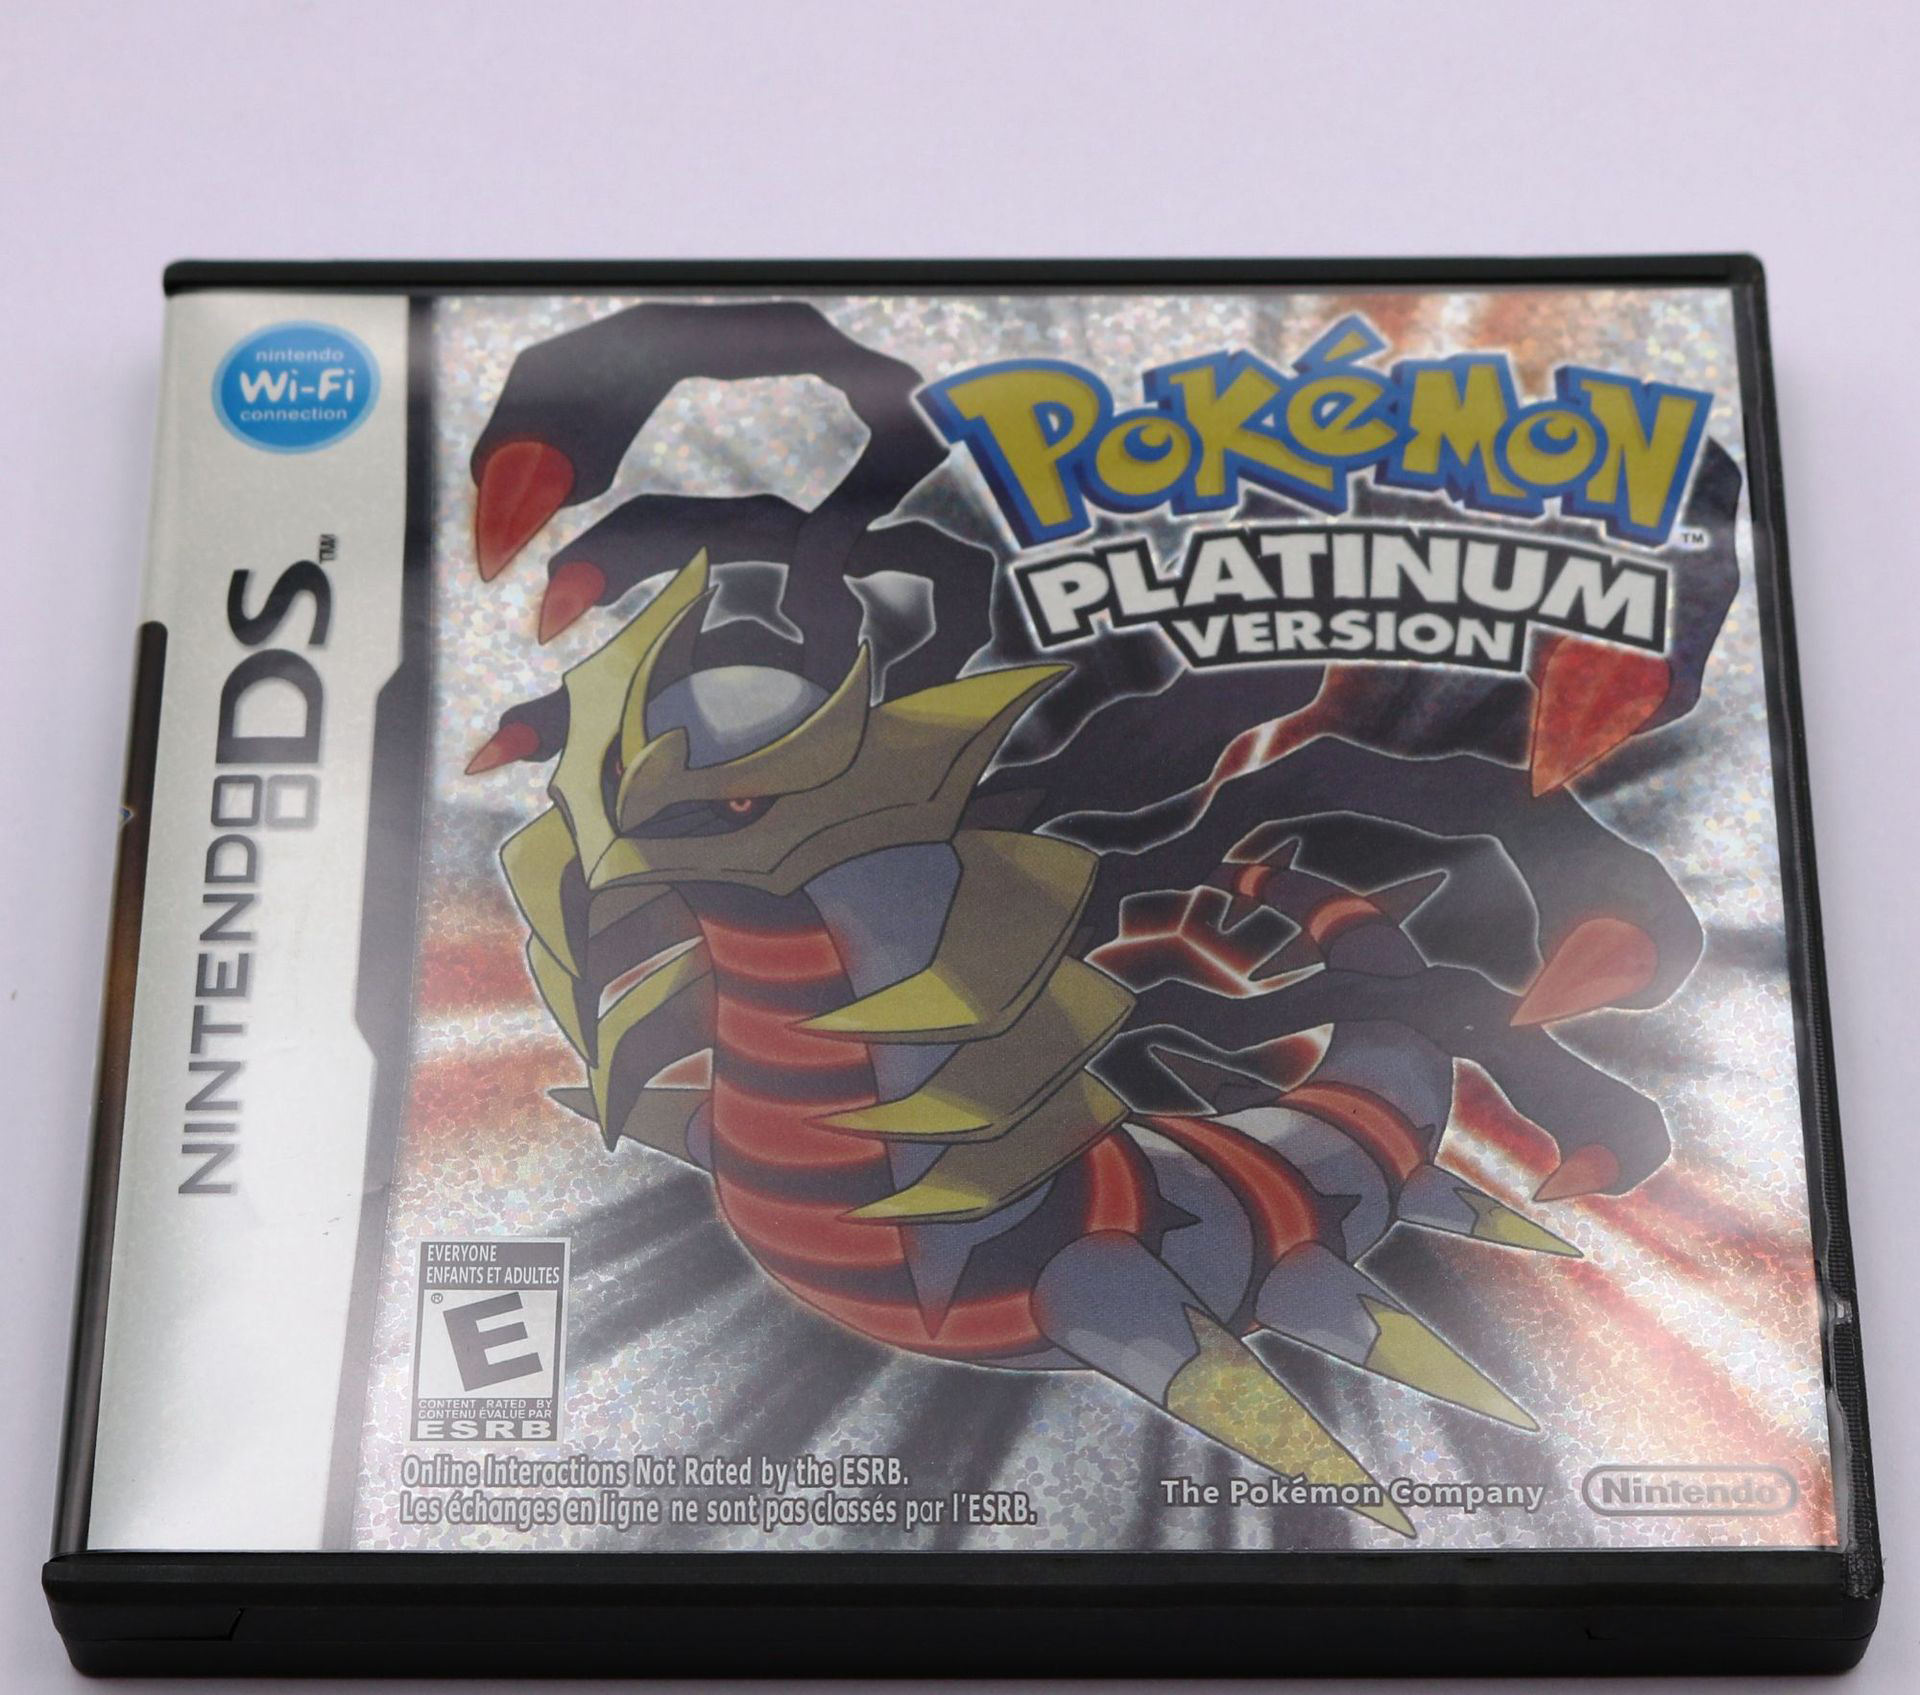 Platinum Pearl Diamond Pokemon Gmae Cards With USA Packing Box For Nintendo DS NDS NDSL 3DS 3DSLL